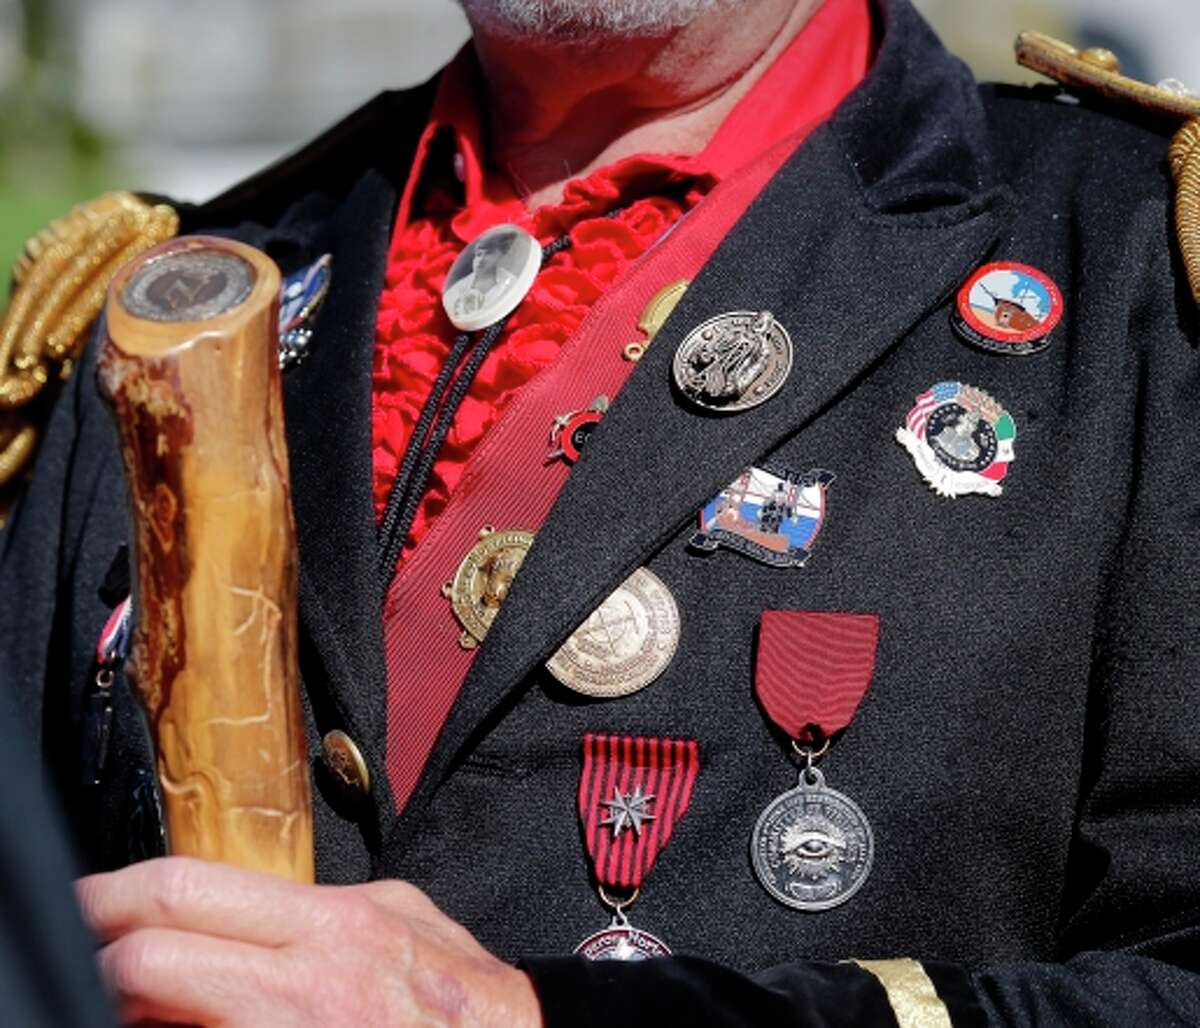 Emperor Norton, portrayed by actor Rick Saber, arrives with his medals to instruct cemetery guests.